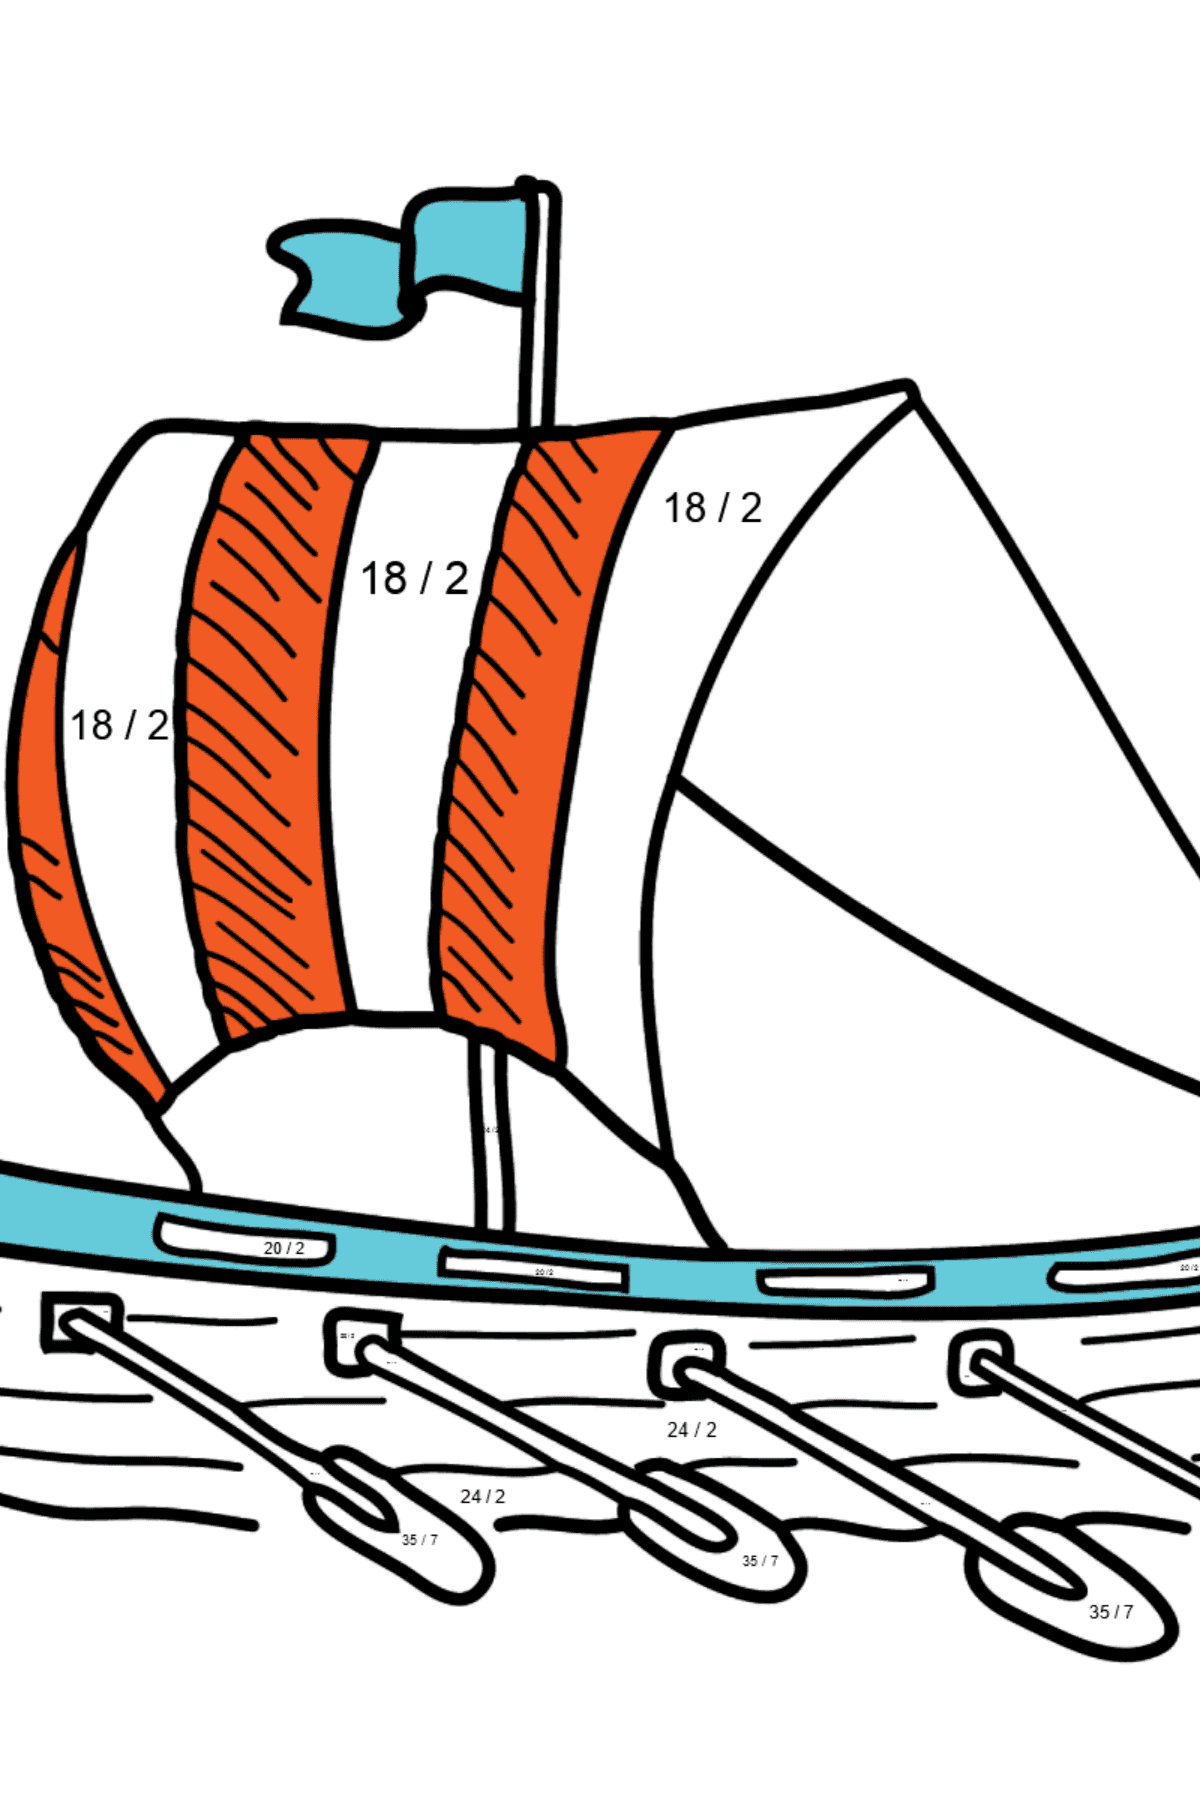 Coloring Page - A River Rowing Boat - Math Coloring - Division for Kids